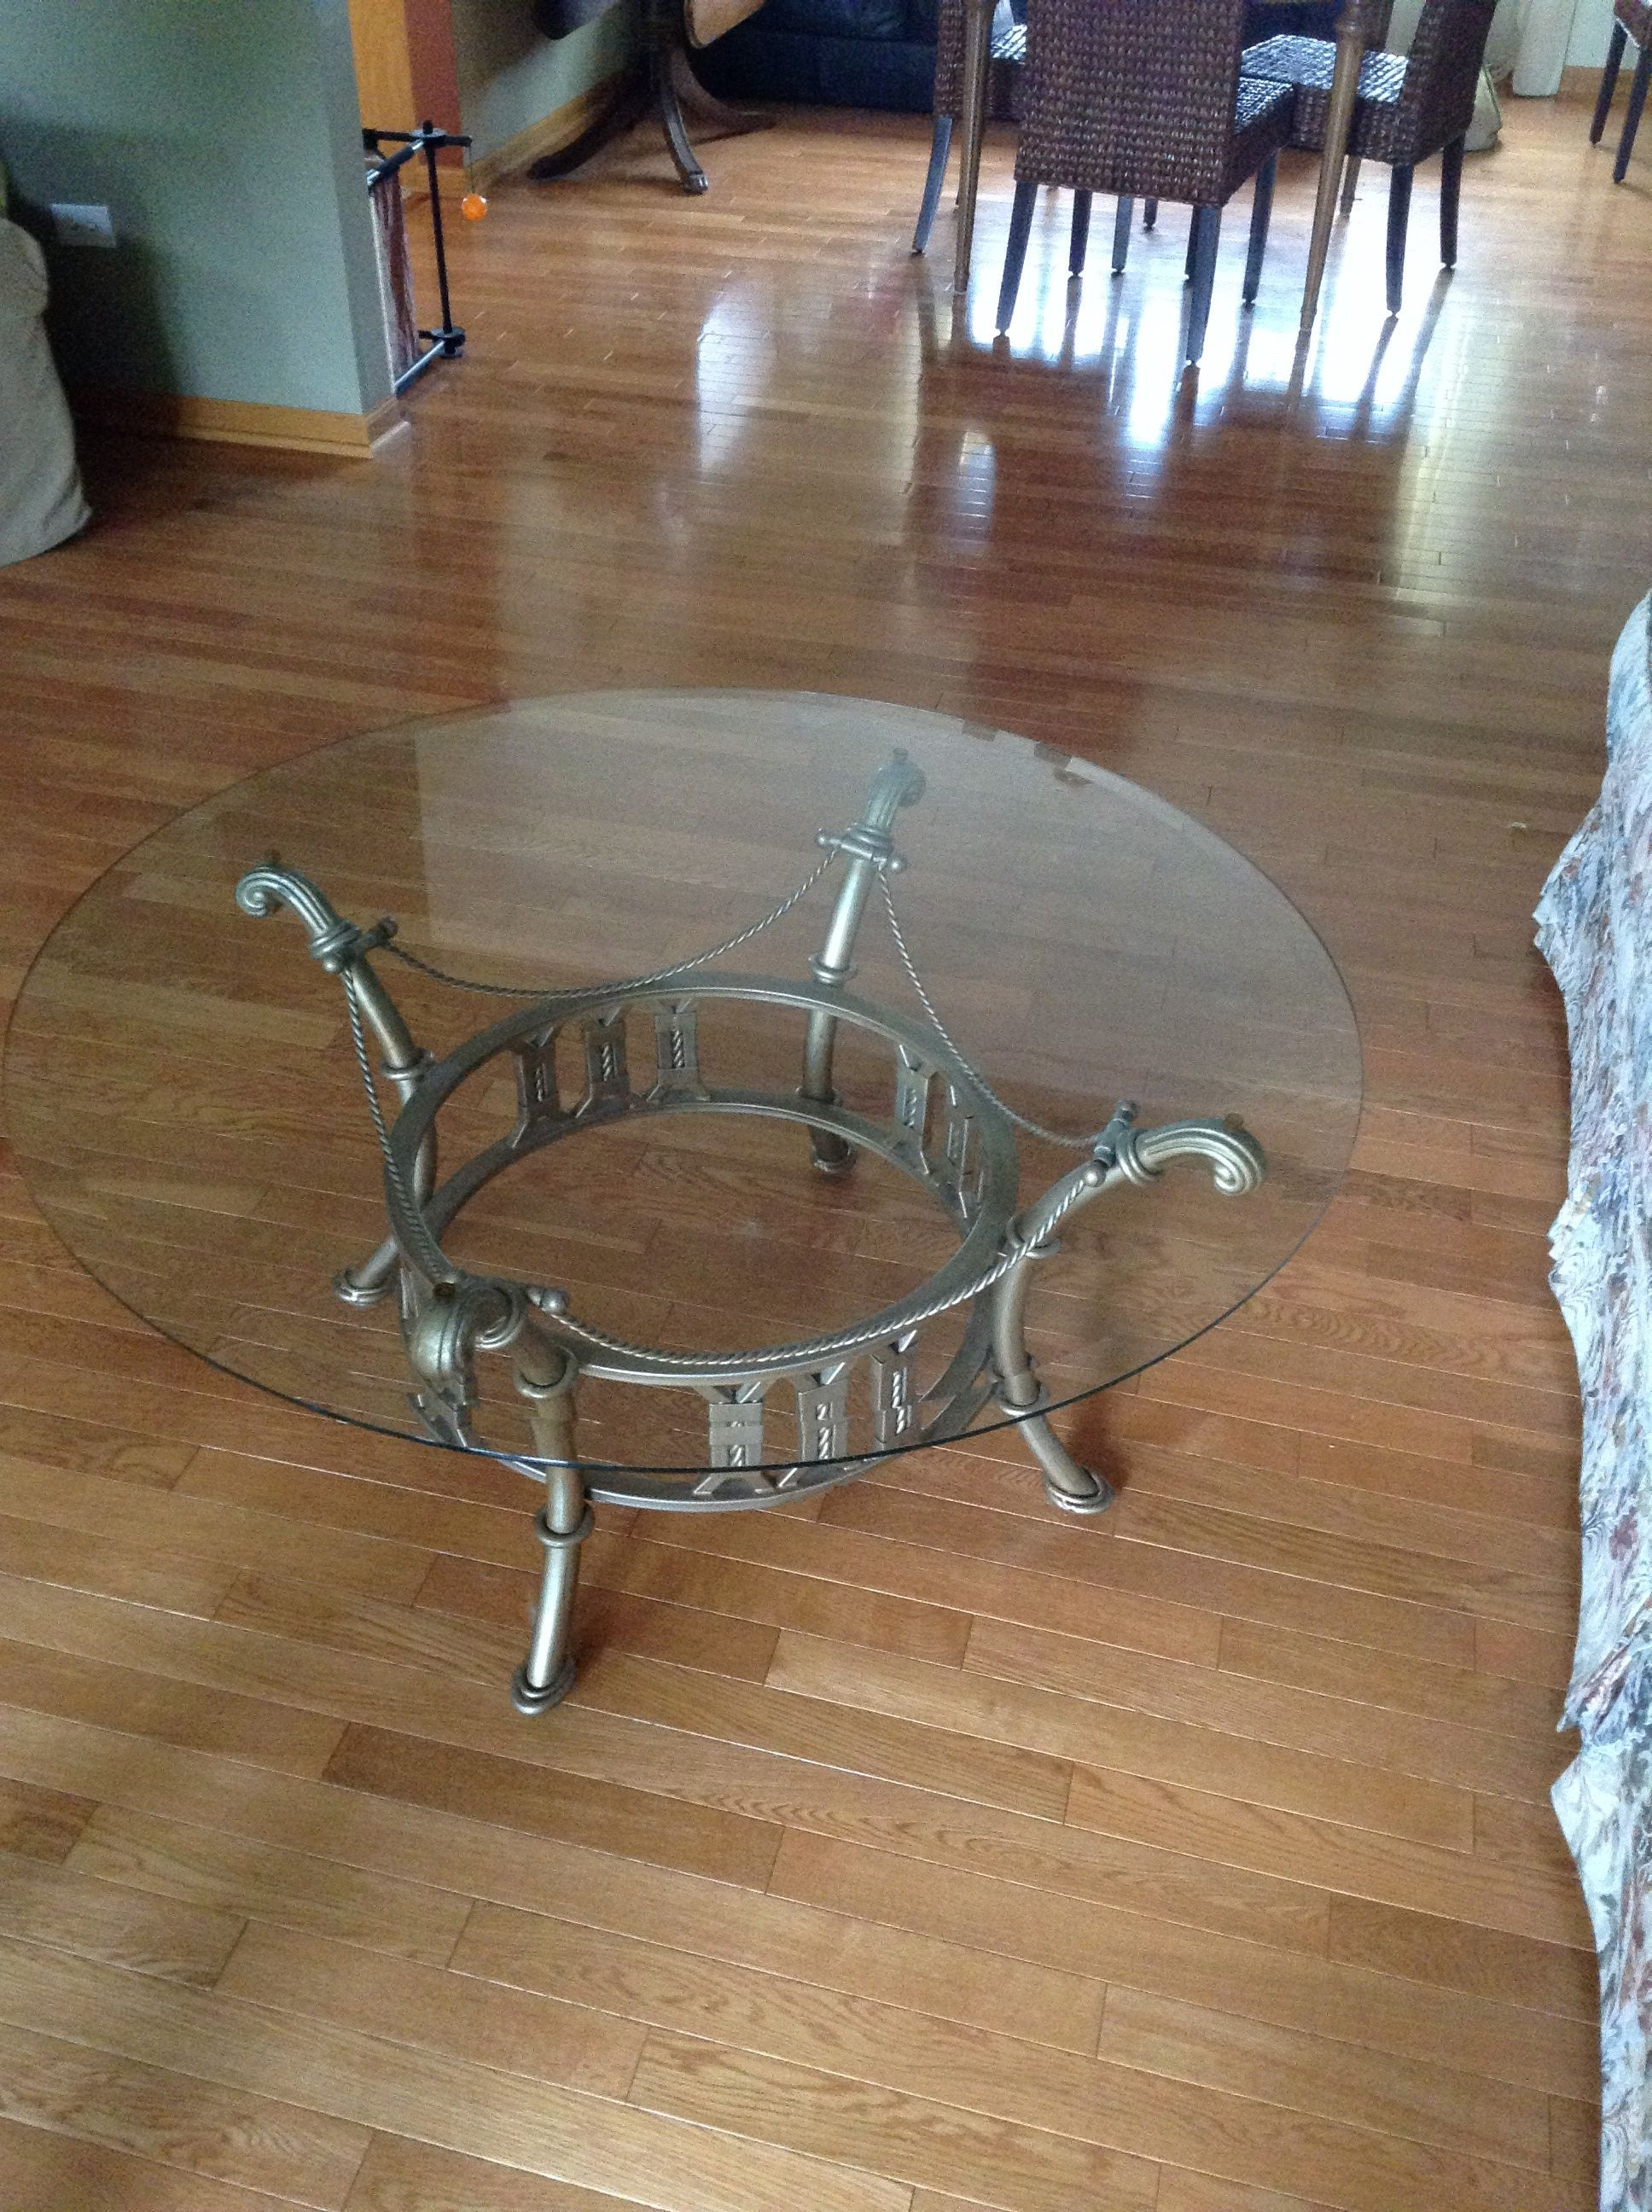 End tables with glass tops and matching coffee table in